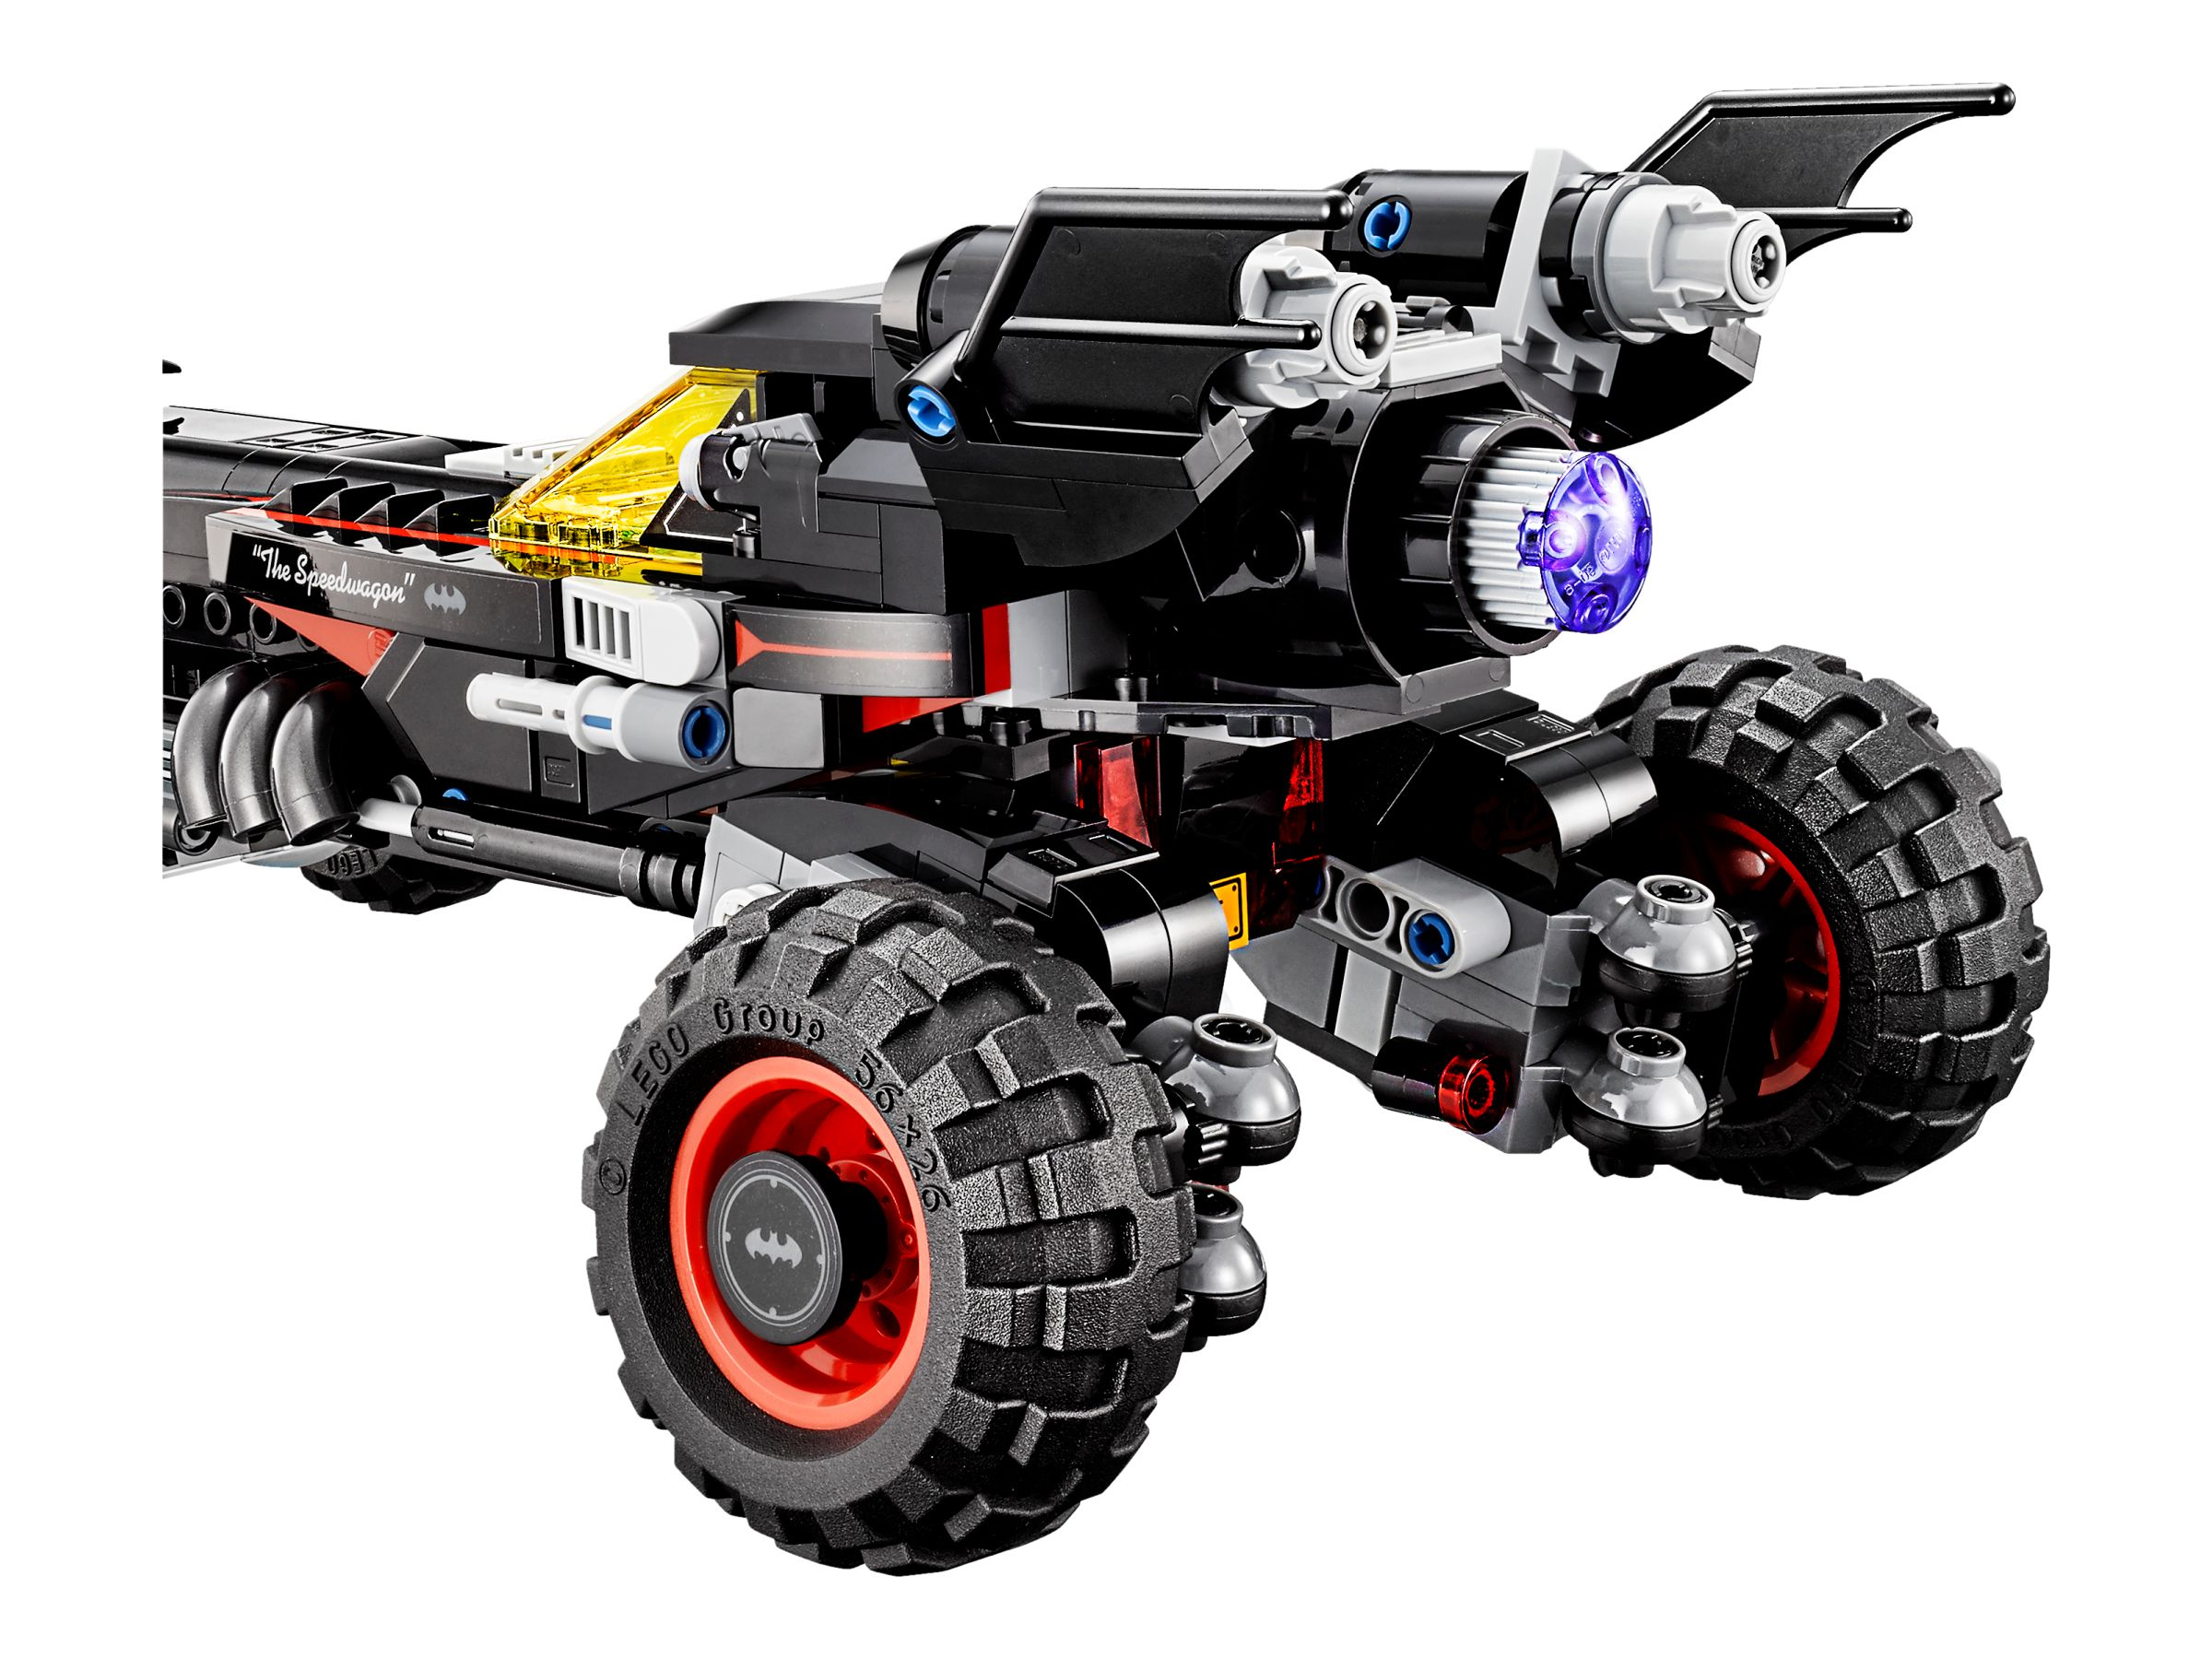 LEGO The LEGO Batman Movie 70905 Das Batmobil LEGO_70905_alt4.jpg